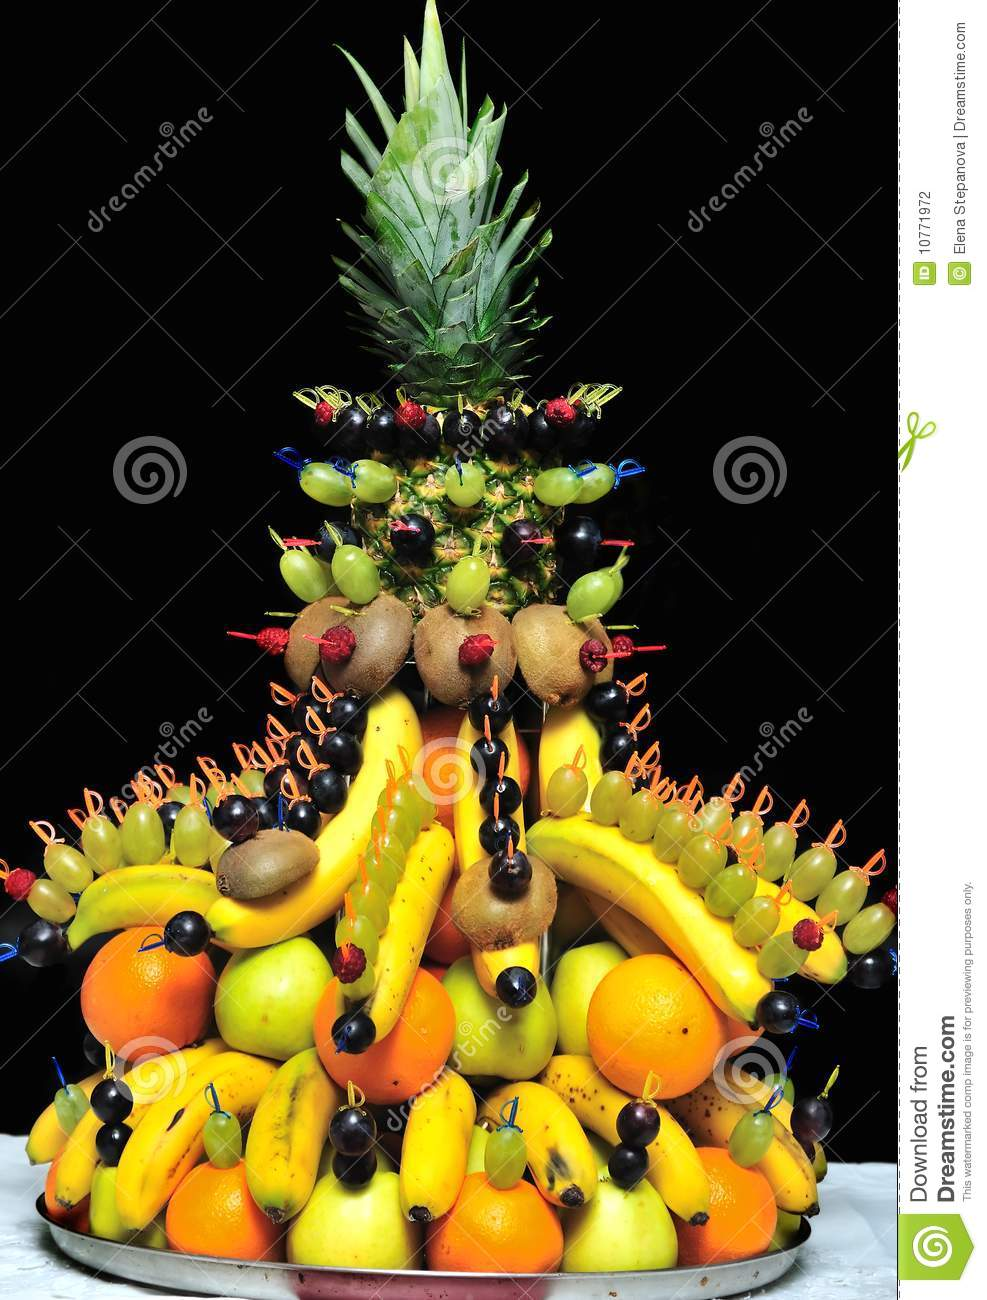 Fruits decorations stock photography image 10771972 for Decoration fruit